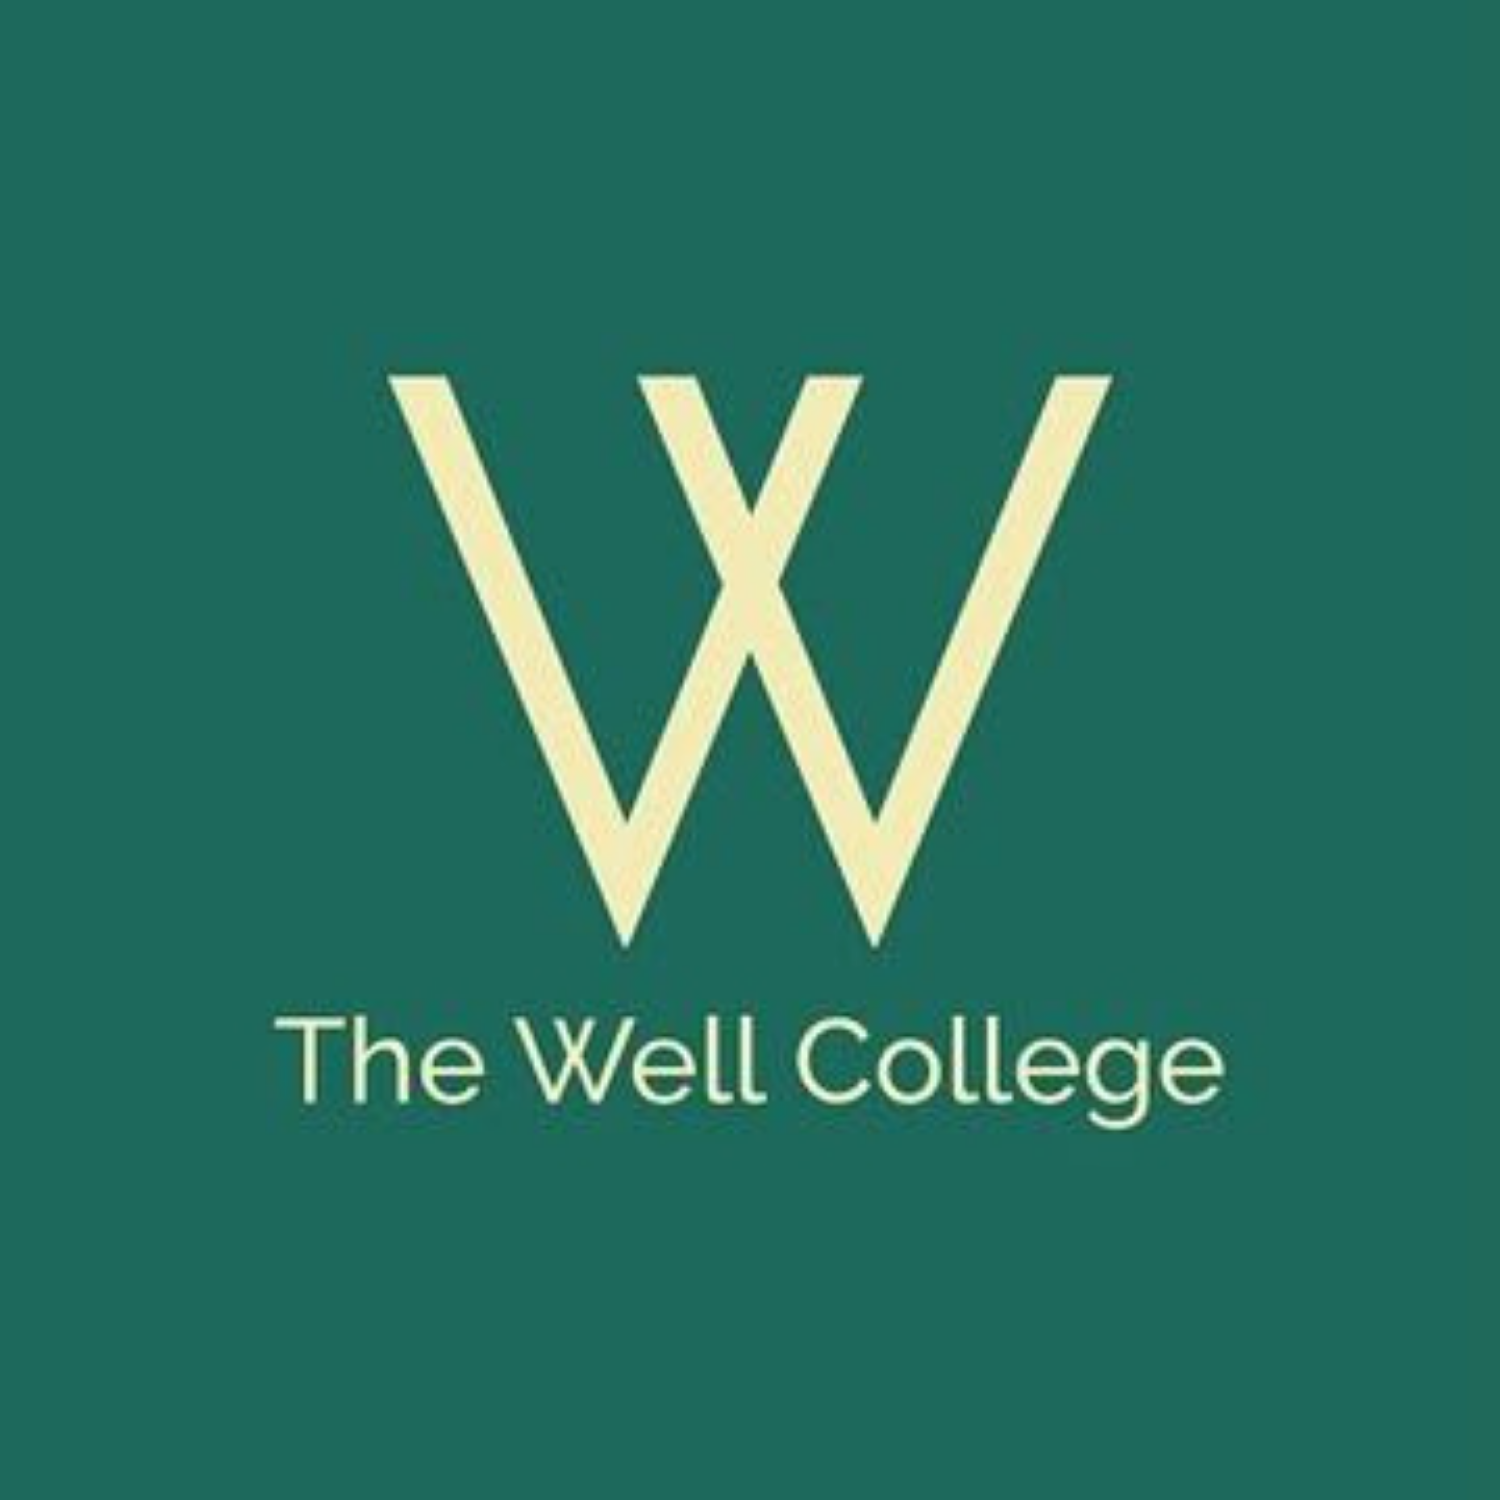 The Well College